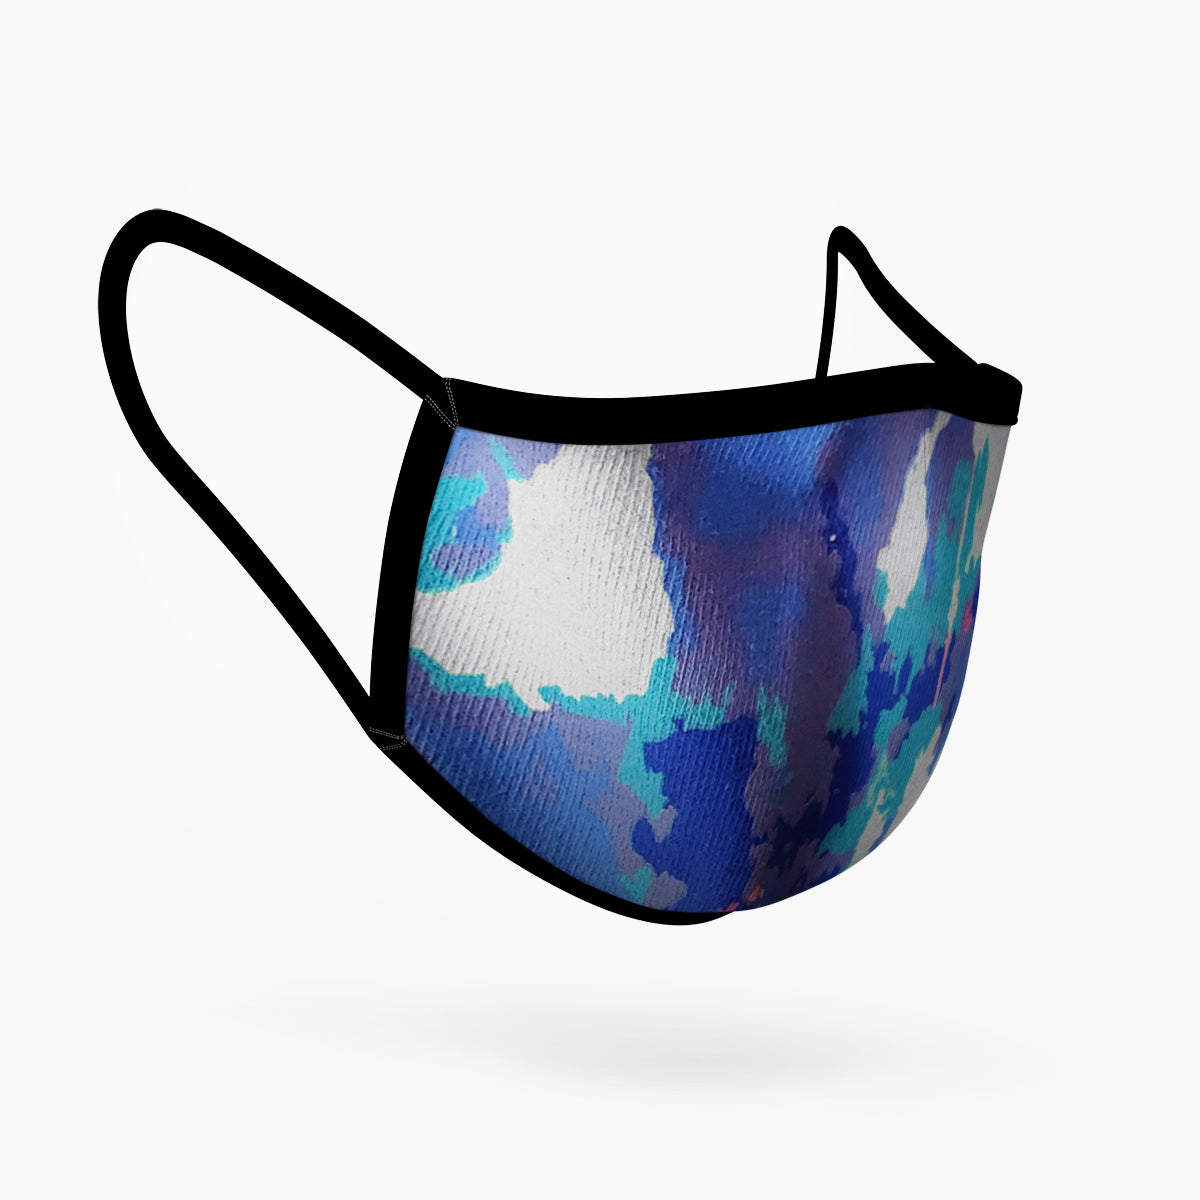 Blue Tie Dye Mask - Adults Only